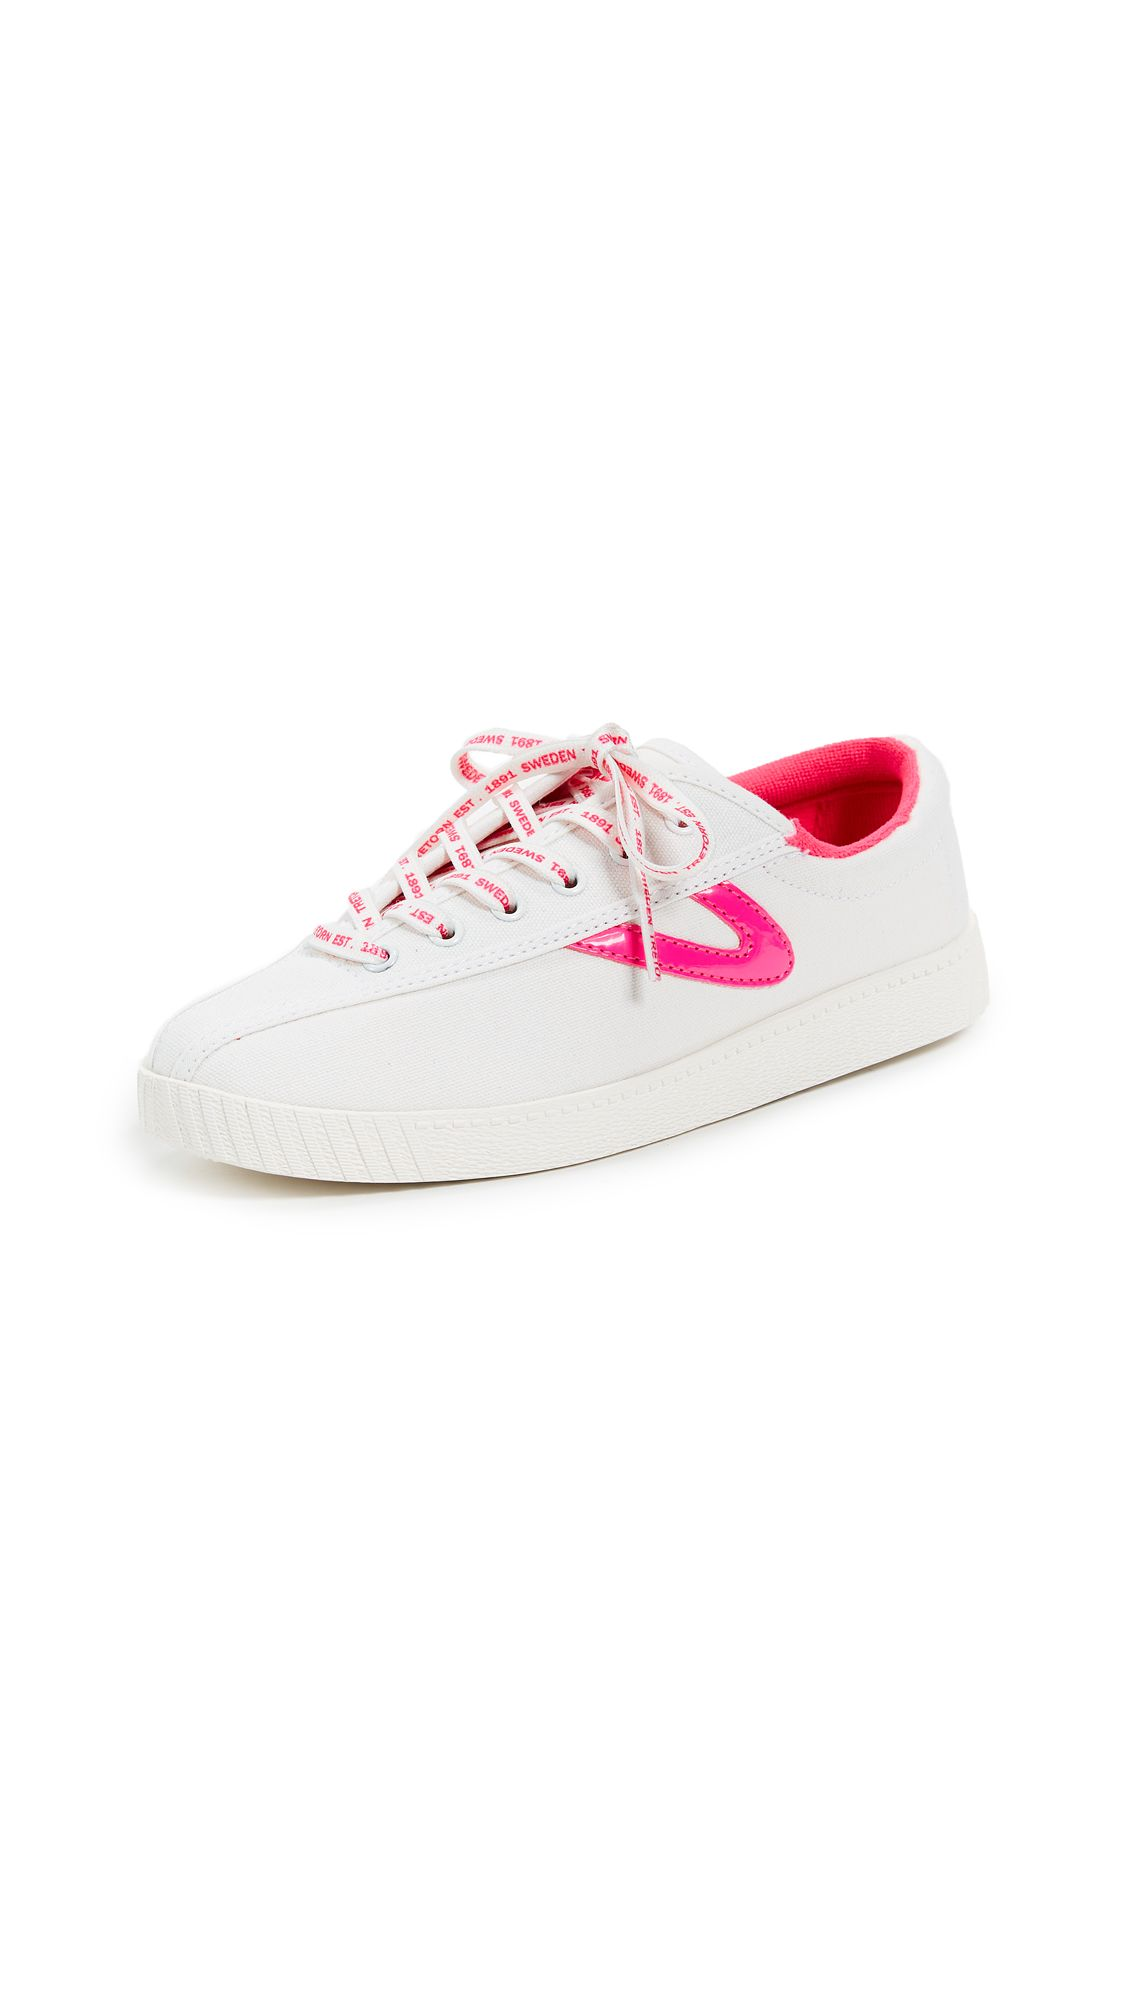 TRETORN NYLITE PLUS LACE UP SNEAKERS.  tretorn  shoes    178b6525ae3